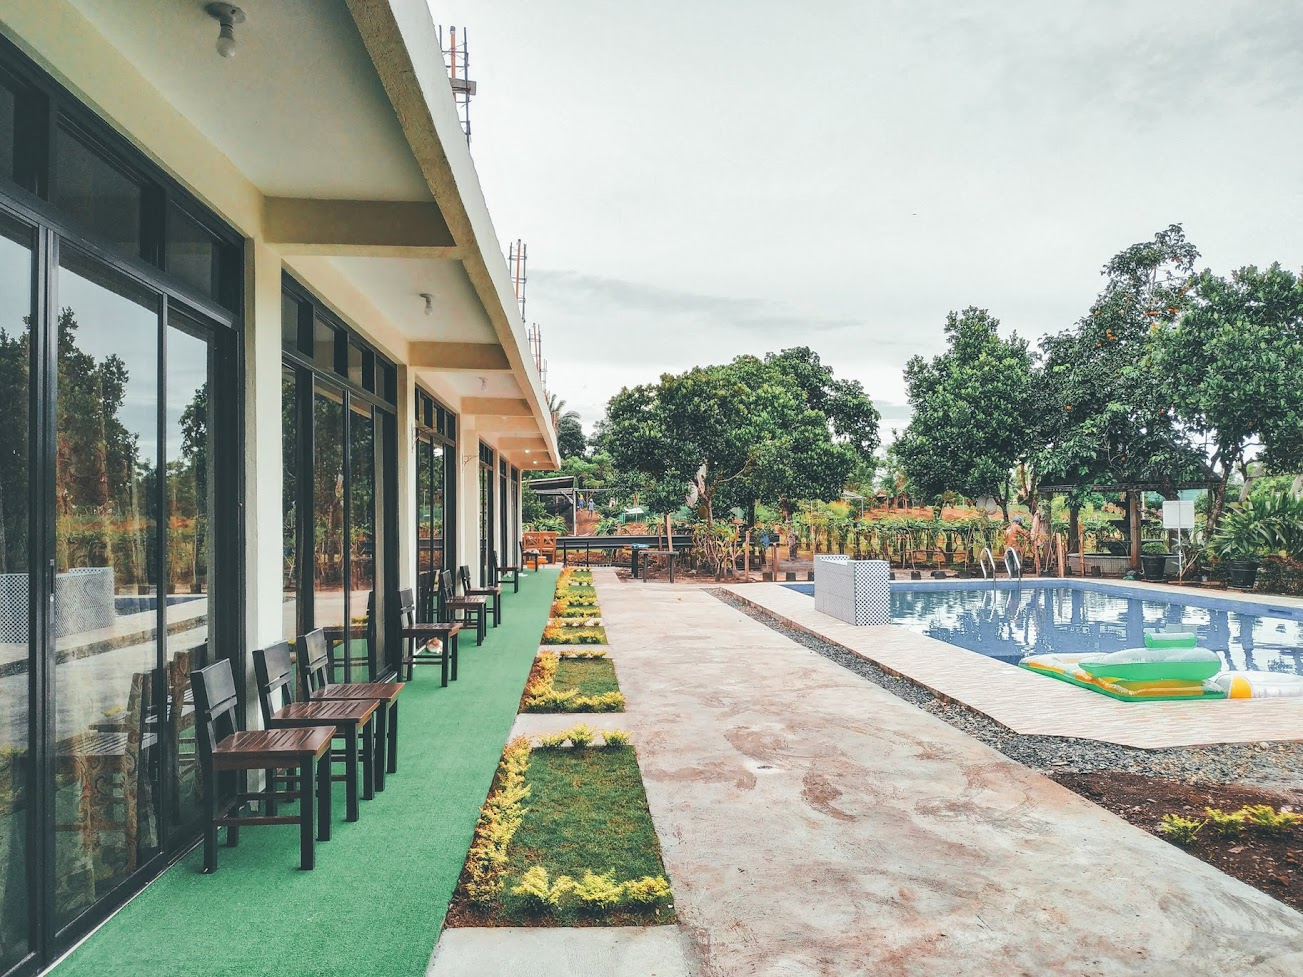 l-j-country-estate-events-staycation-and-organic-farming-in-mendez-cavite